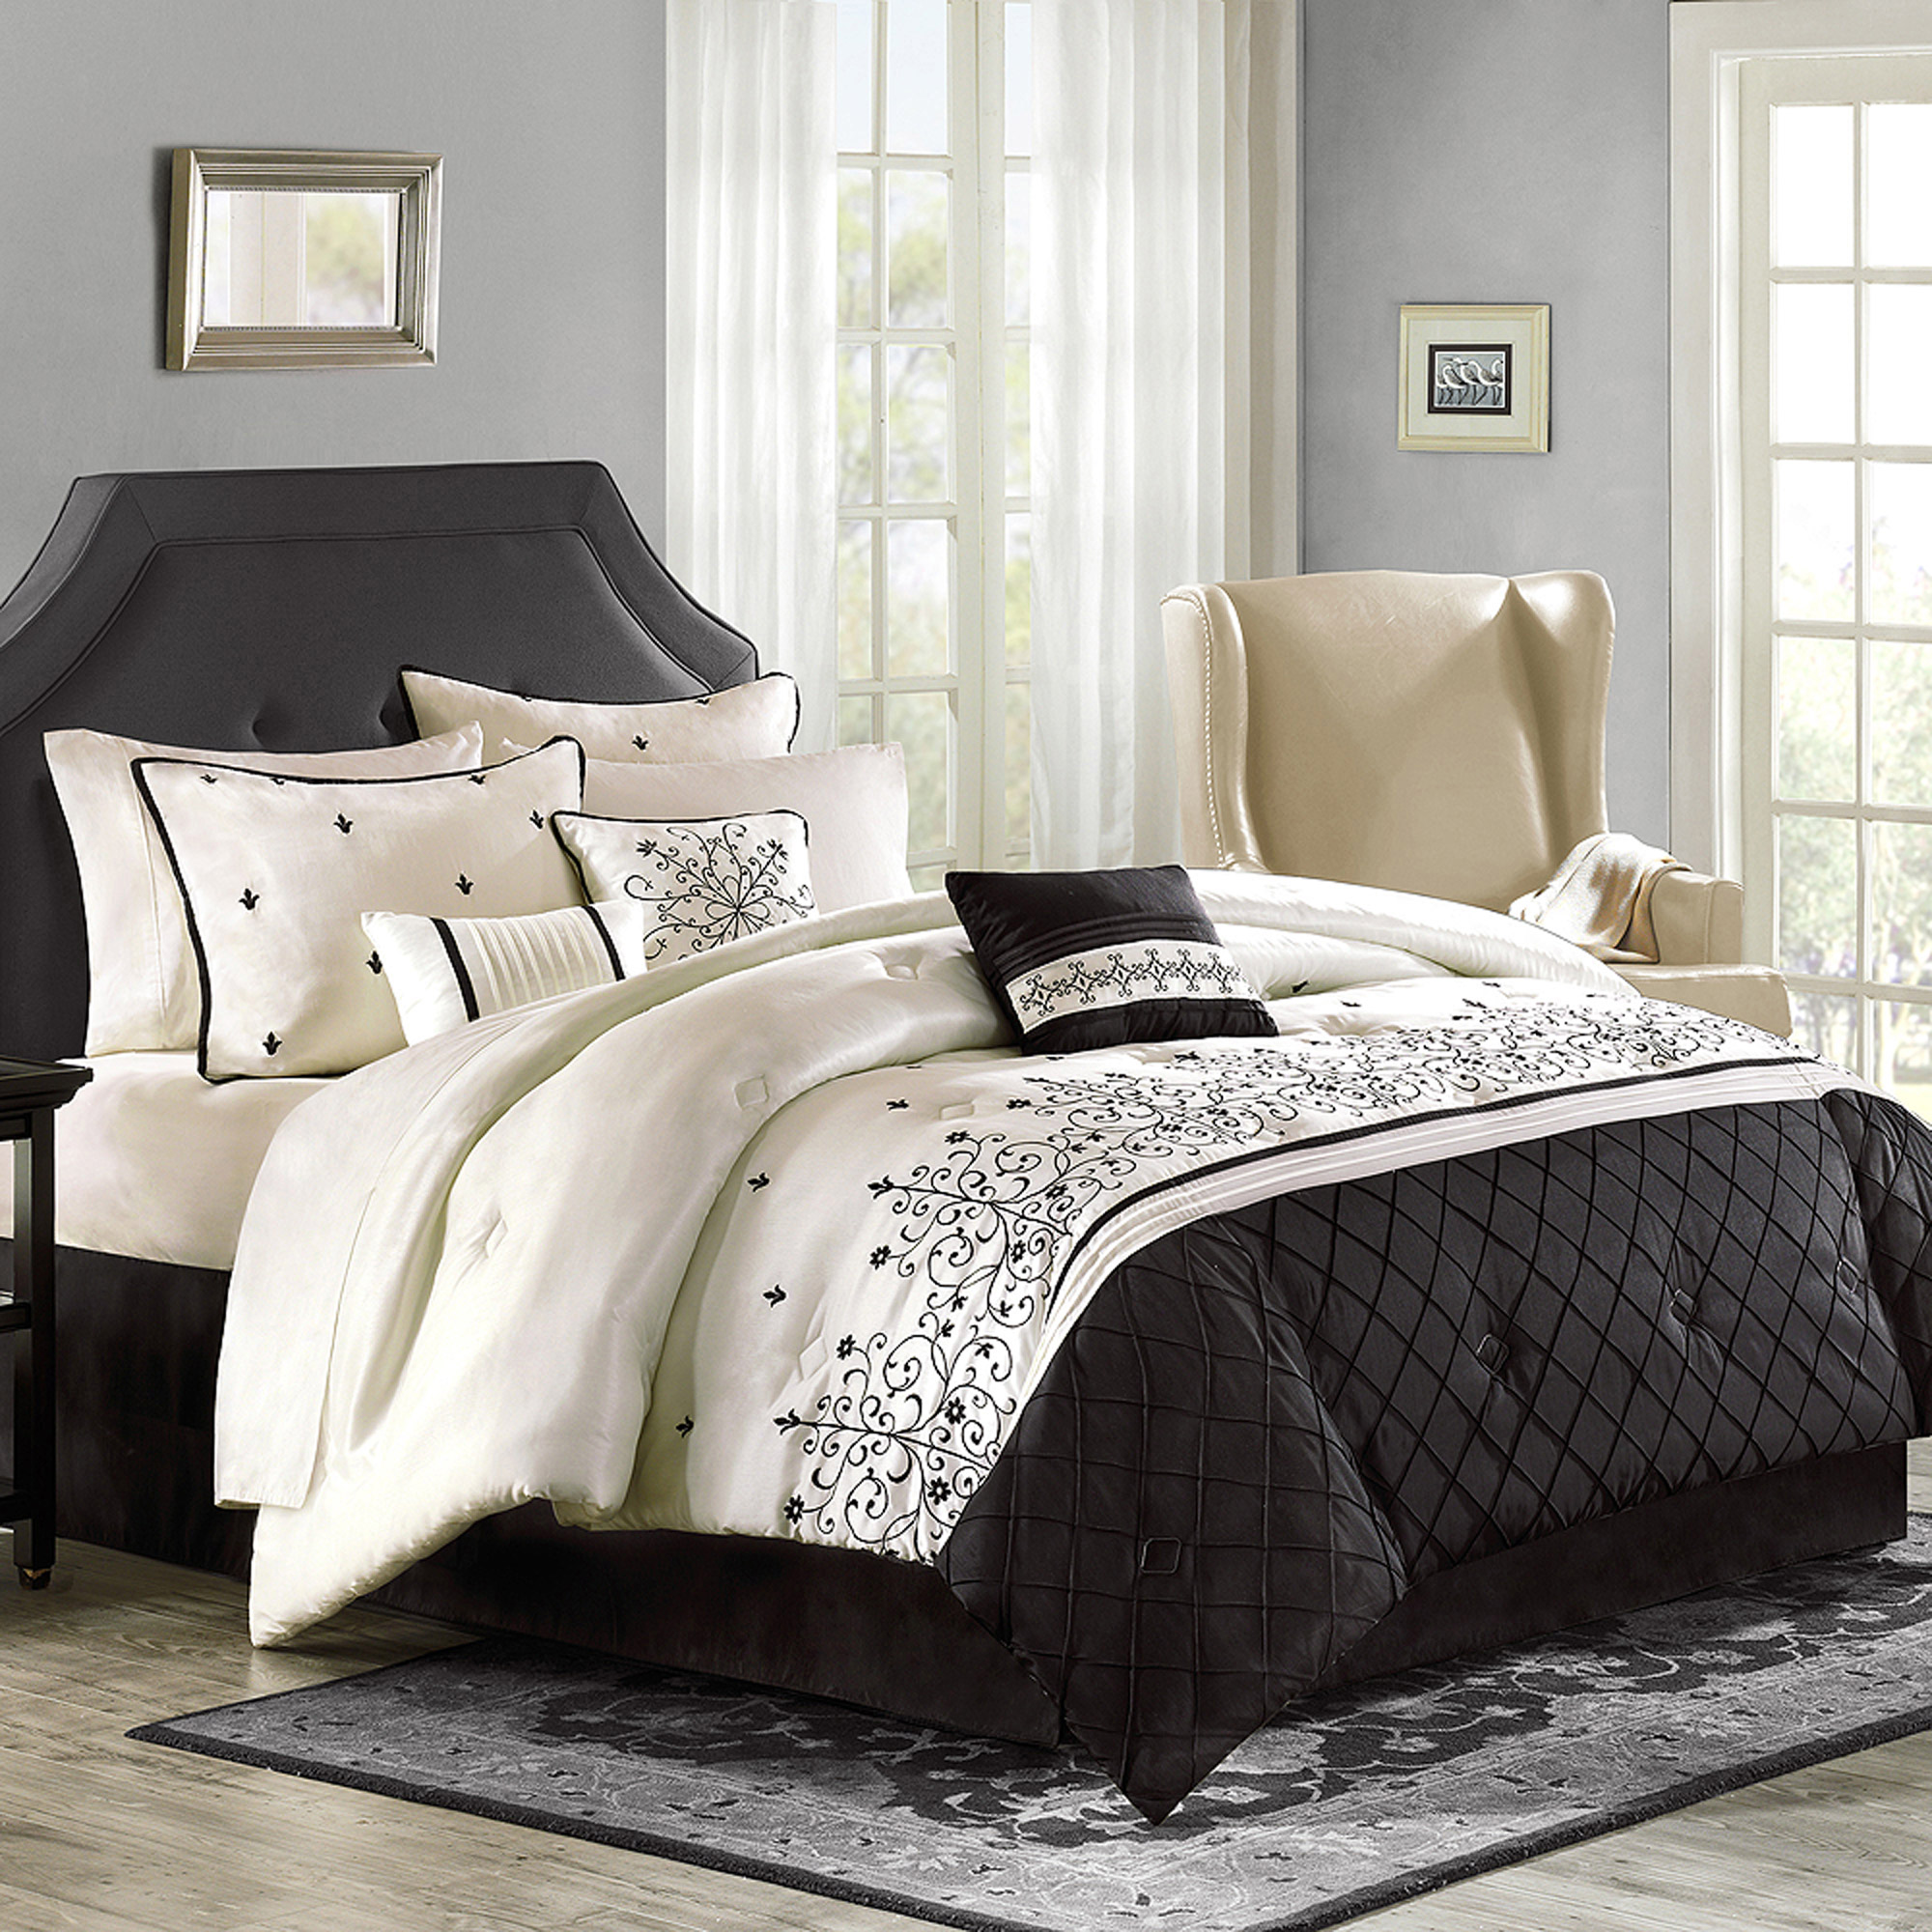 Full Size Comforter | Kids Comforters | Queen Size Bedding Sets